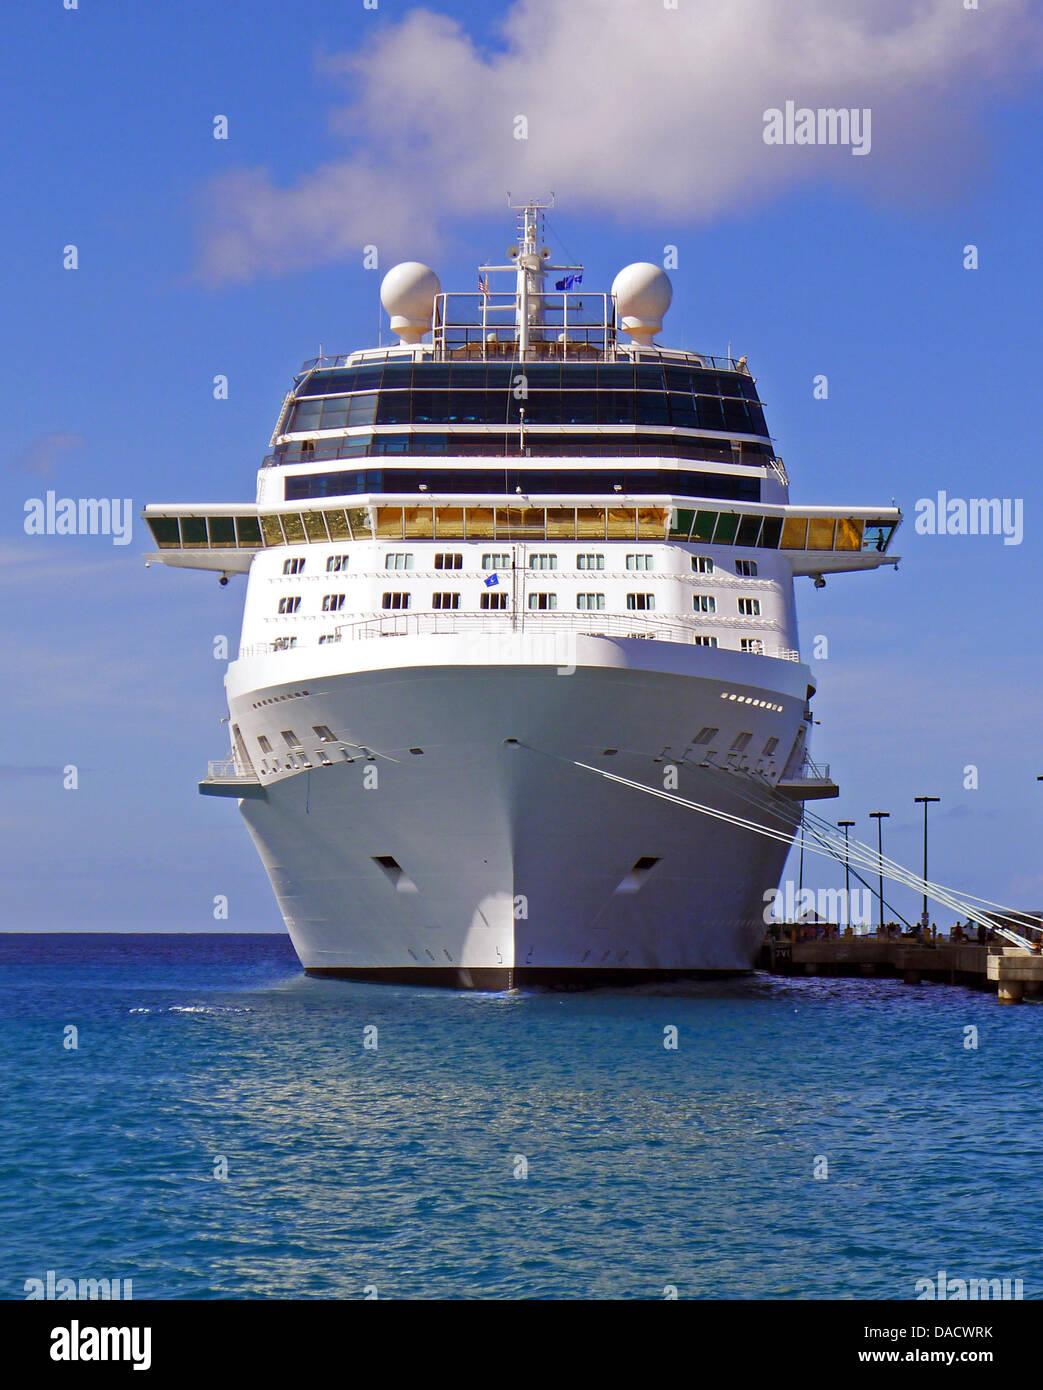 Celebrity Silhouette Cruise Ship: Review, Photos ...